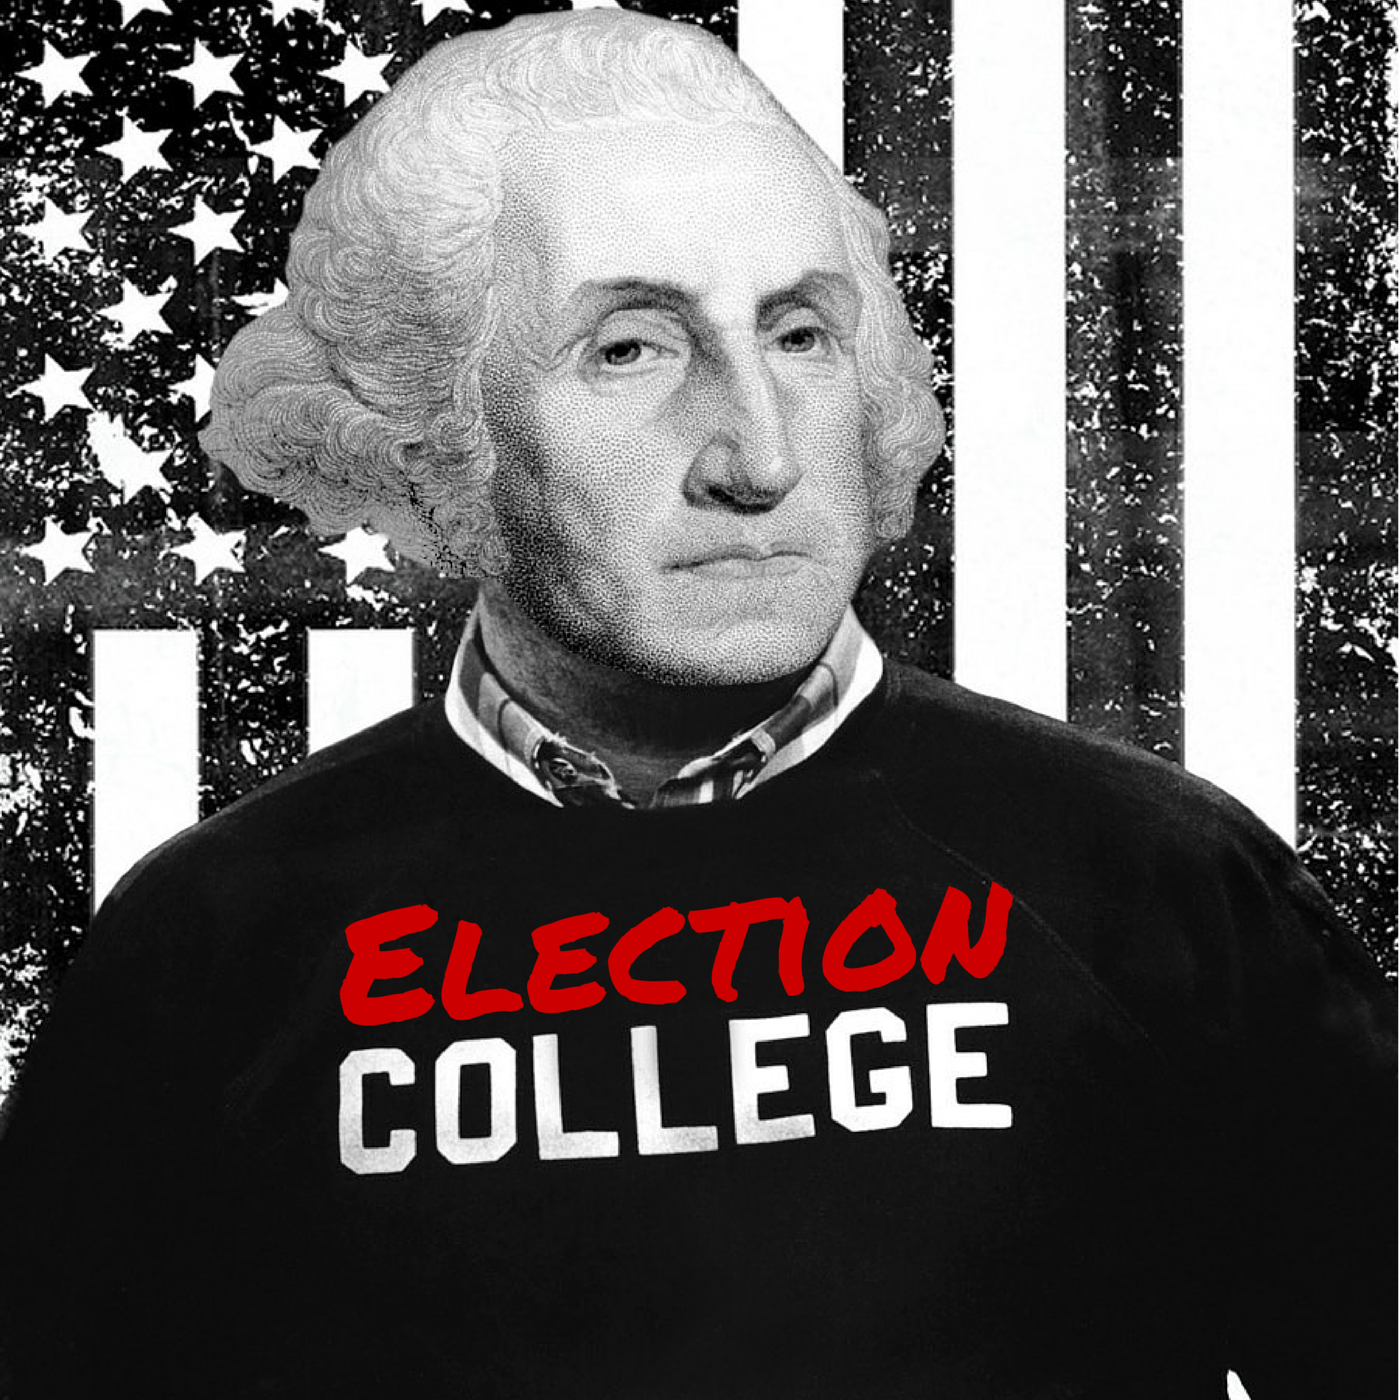 Andrew Johnson - Part 2 | Episode #233 | Election College: United States Presidential Election History